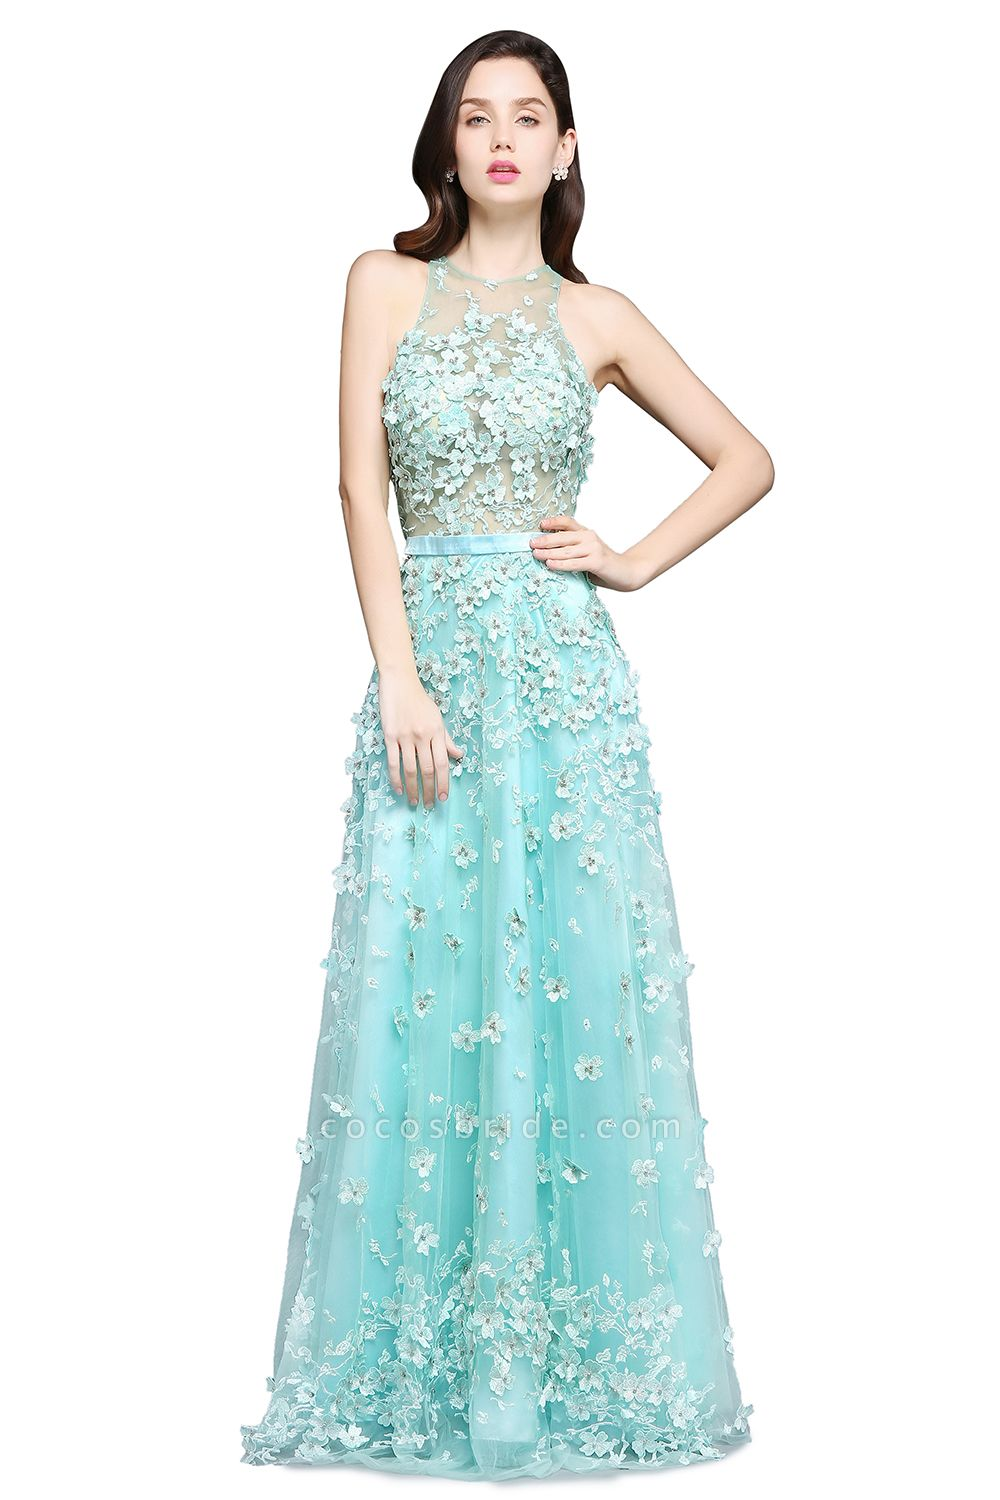 ARIAH | A-line Floor Length Tulle Amazing Evening Dresses with Flowers